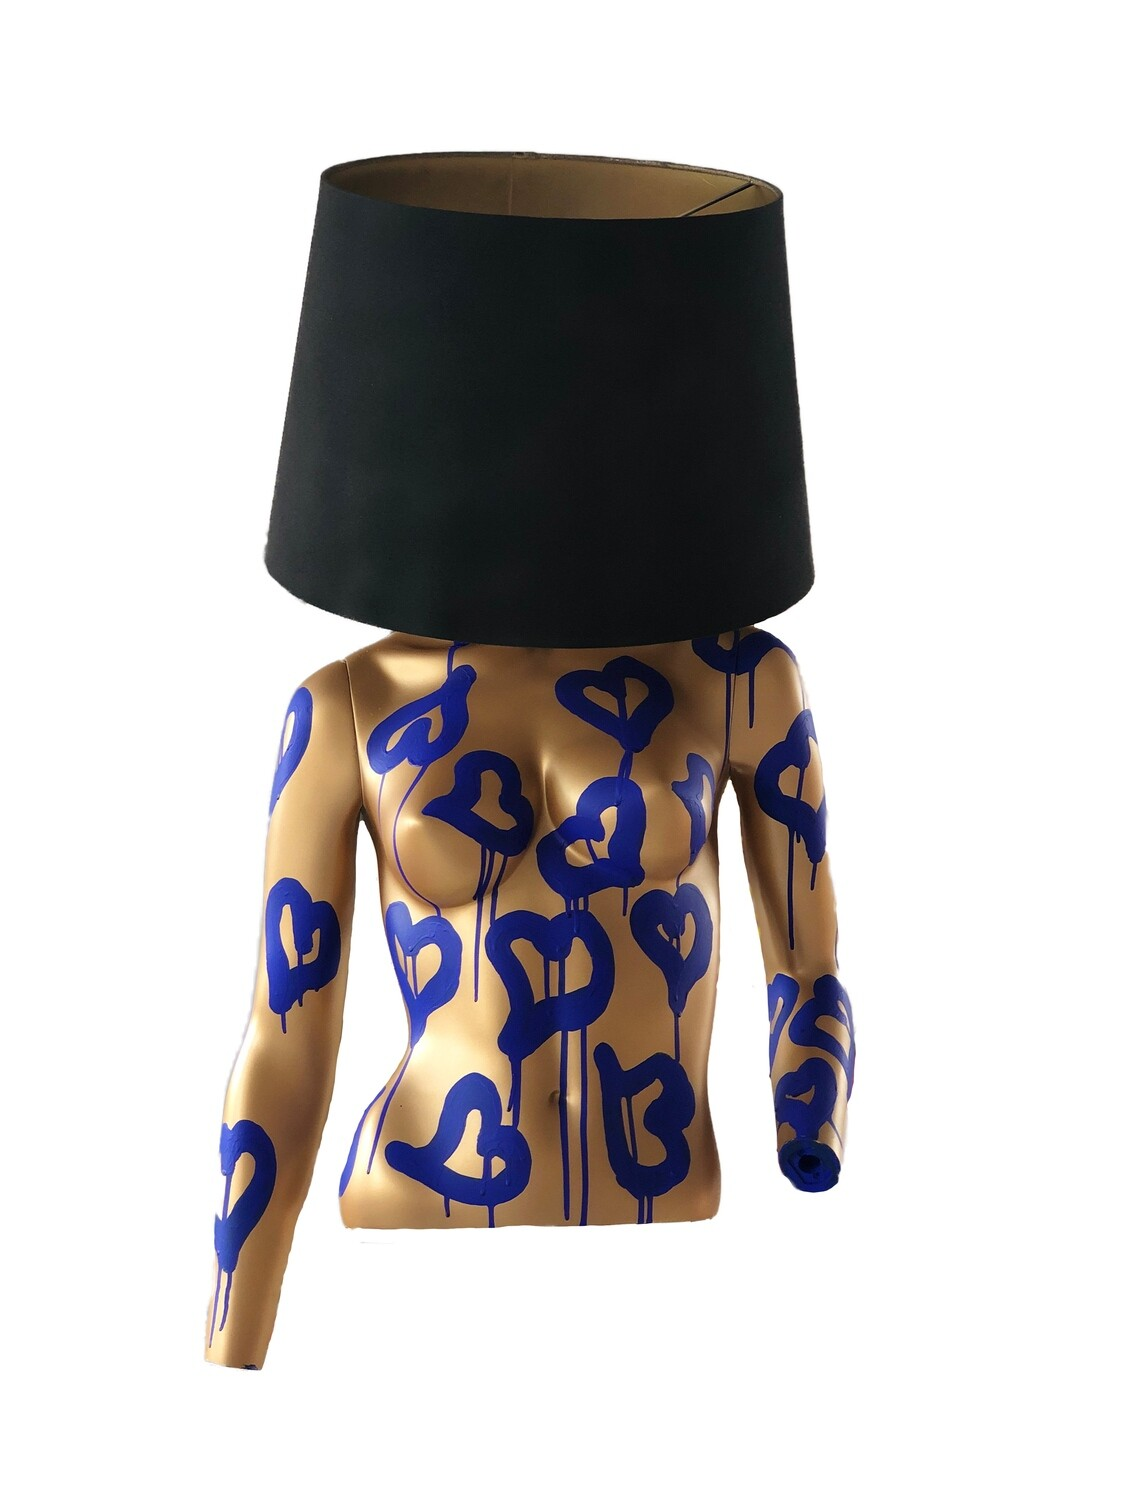 True Love Mannequin Lamp - BuBu Collection